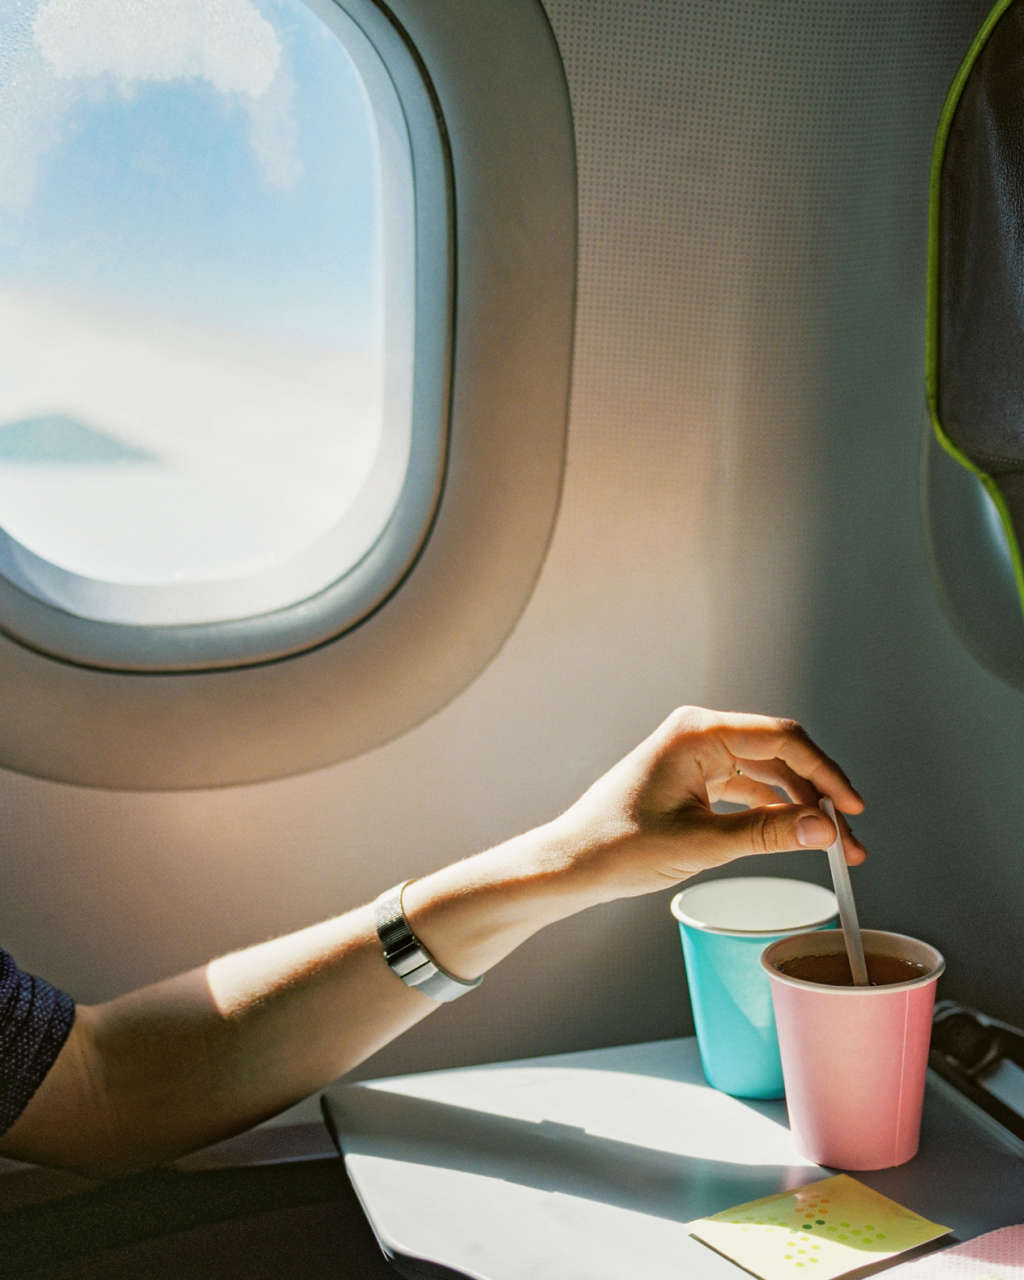 An Easy Trick for Getting First-Class Service in Economy